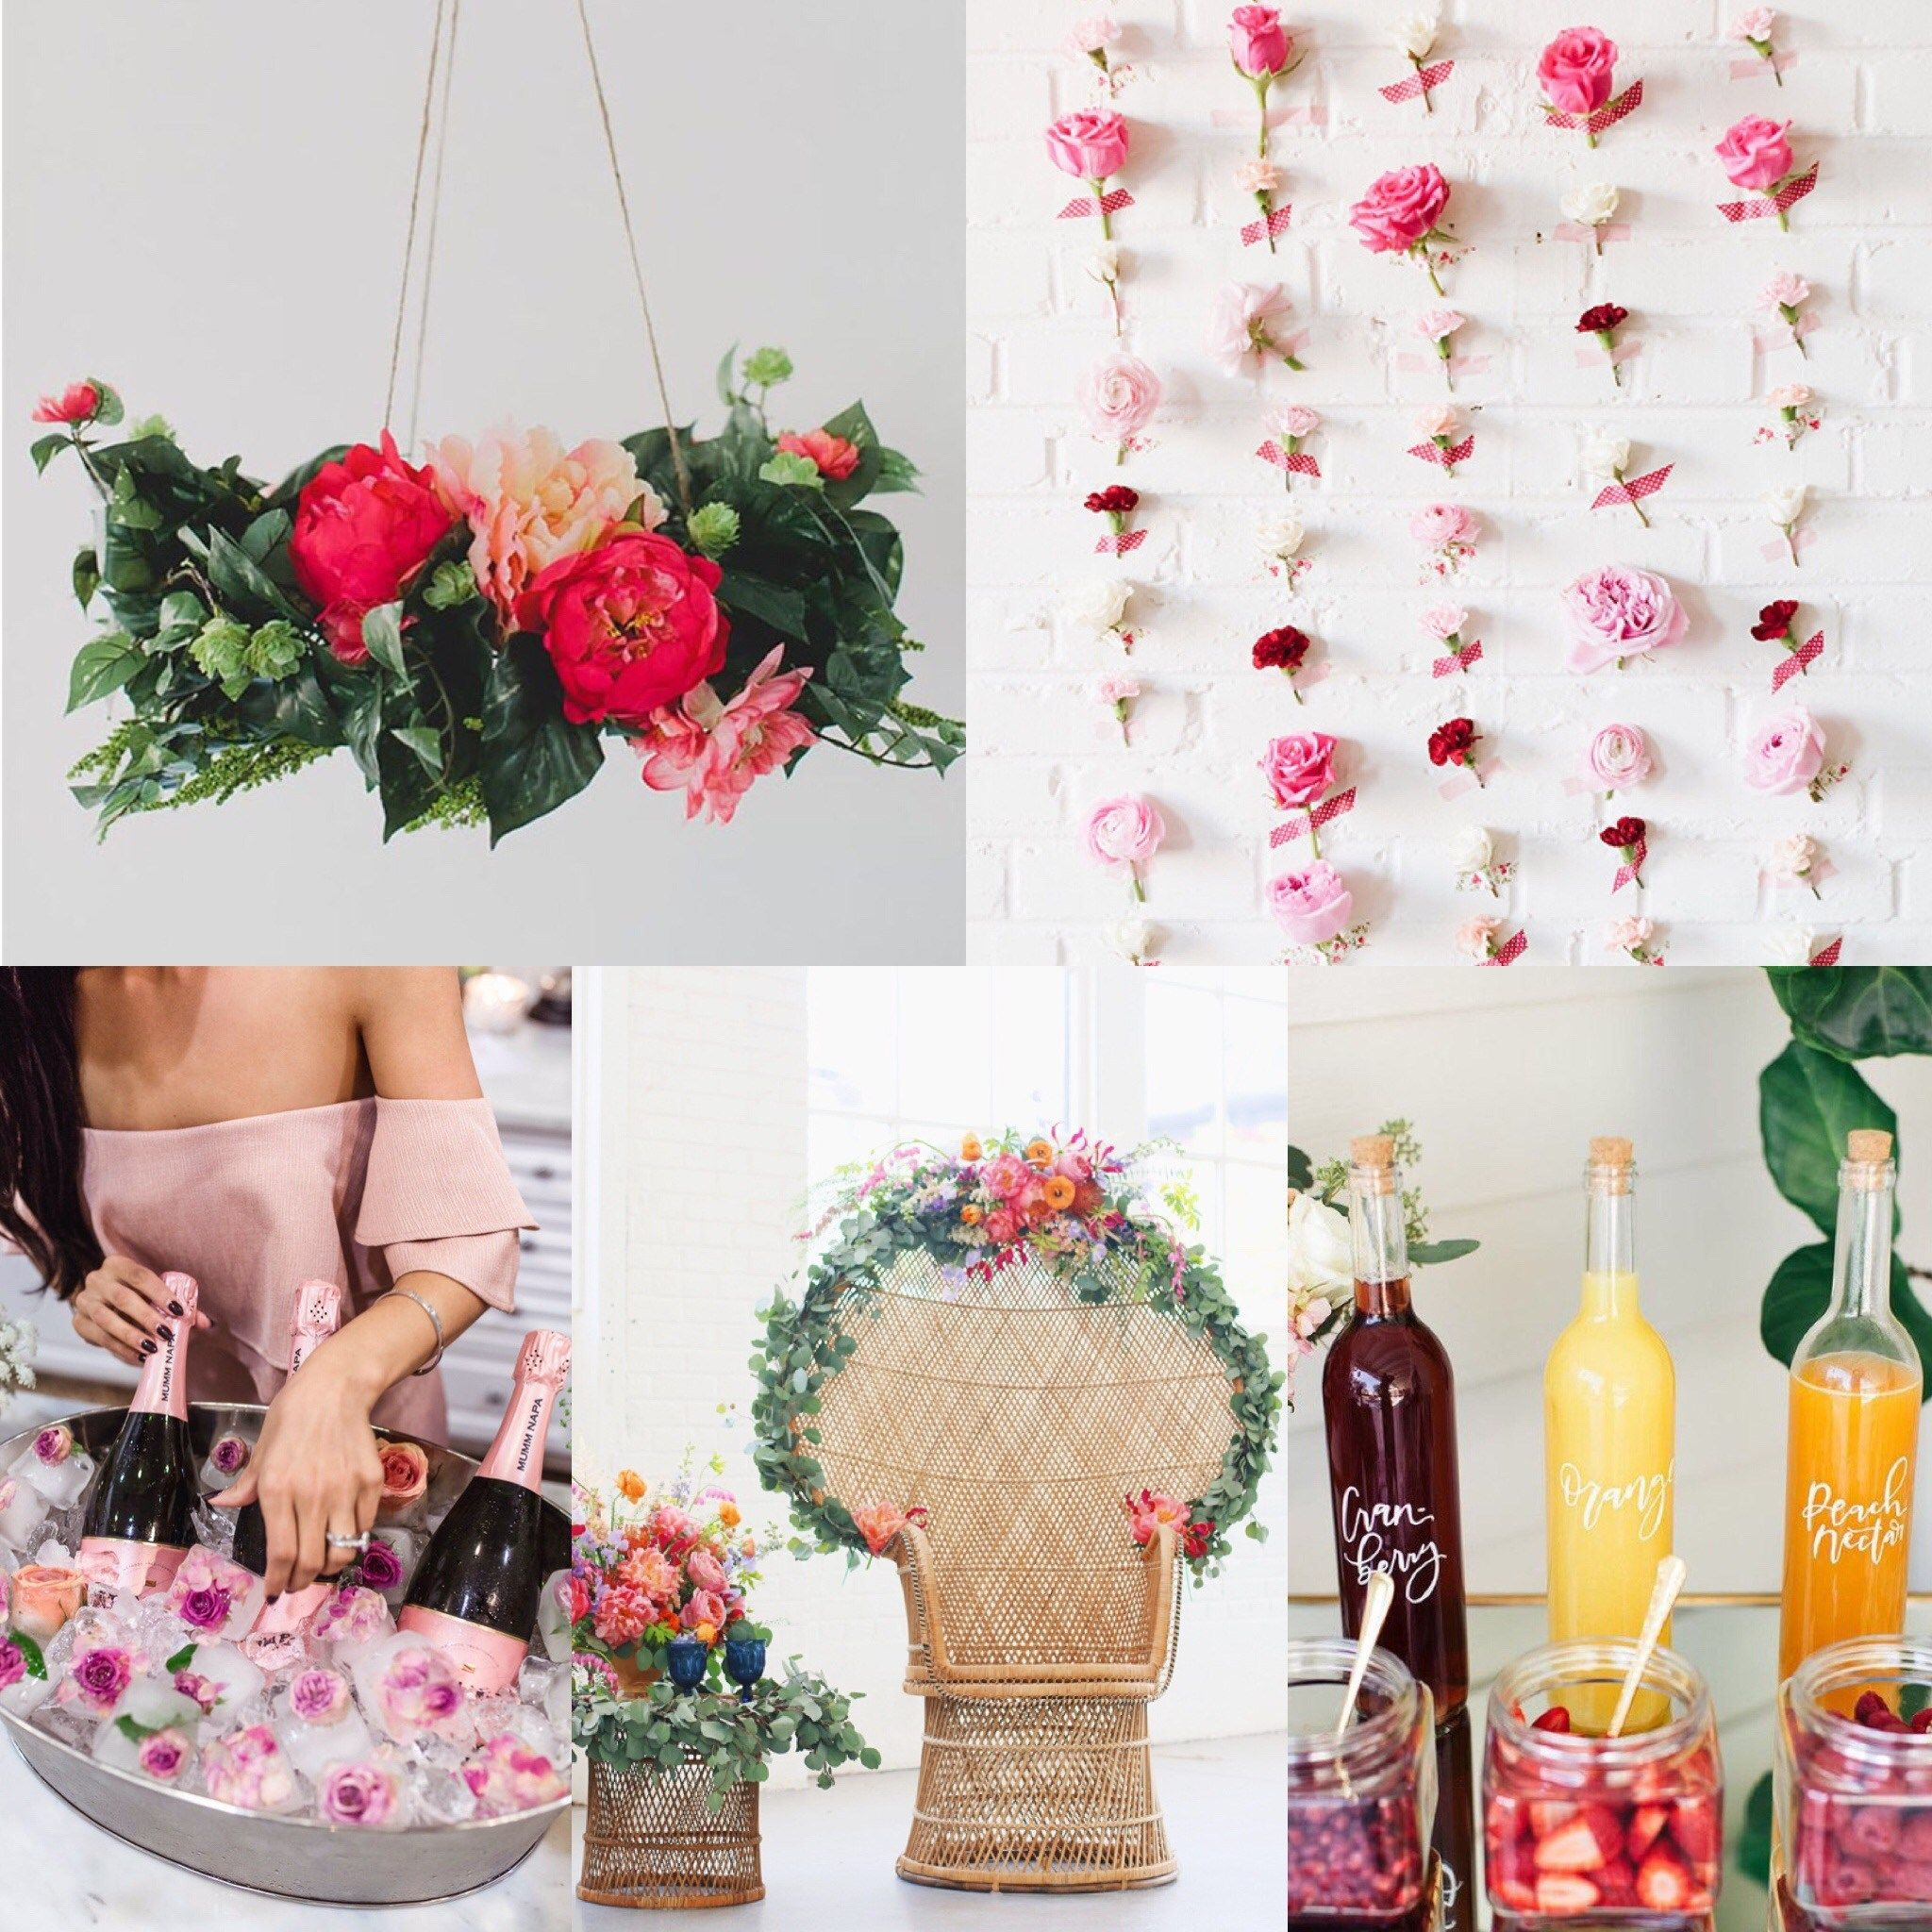 Hot + Chic Bridal Shower Theme Inspiration From Our Bridal Blogger ...